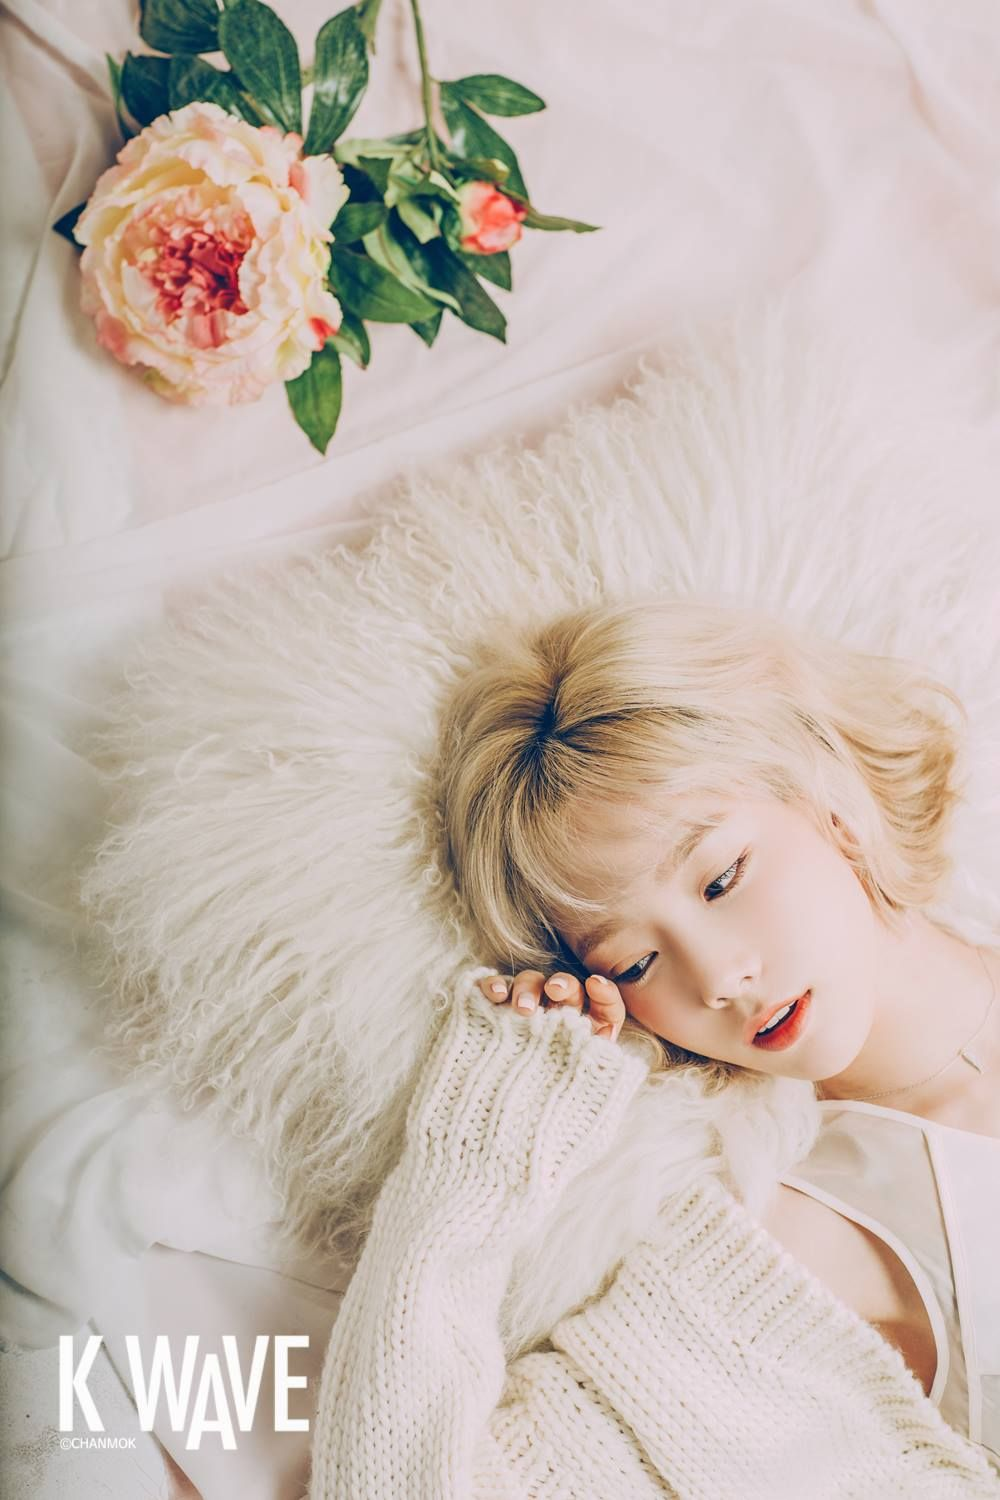 Taeyeon for K Wave